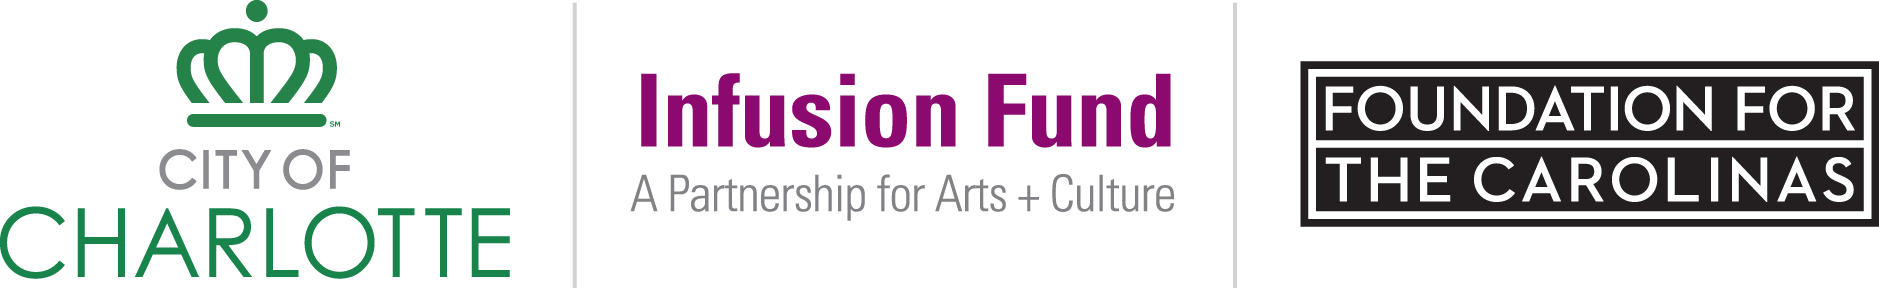 Infusion Fund logo.